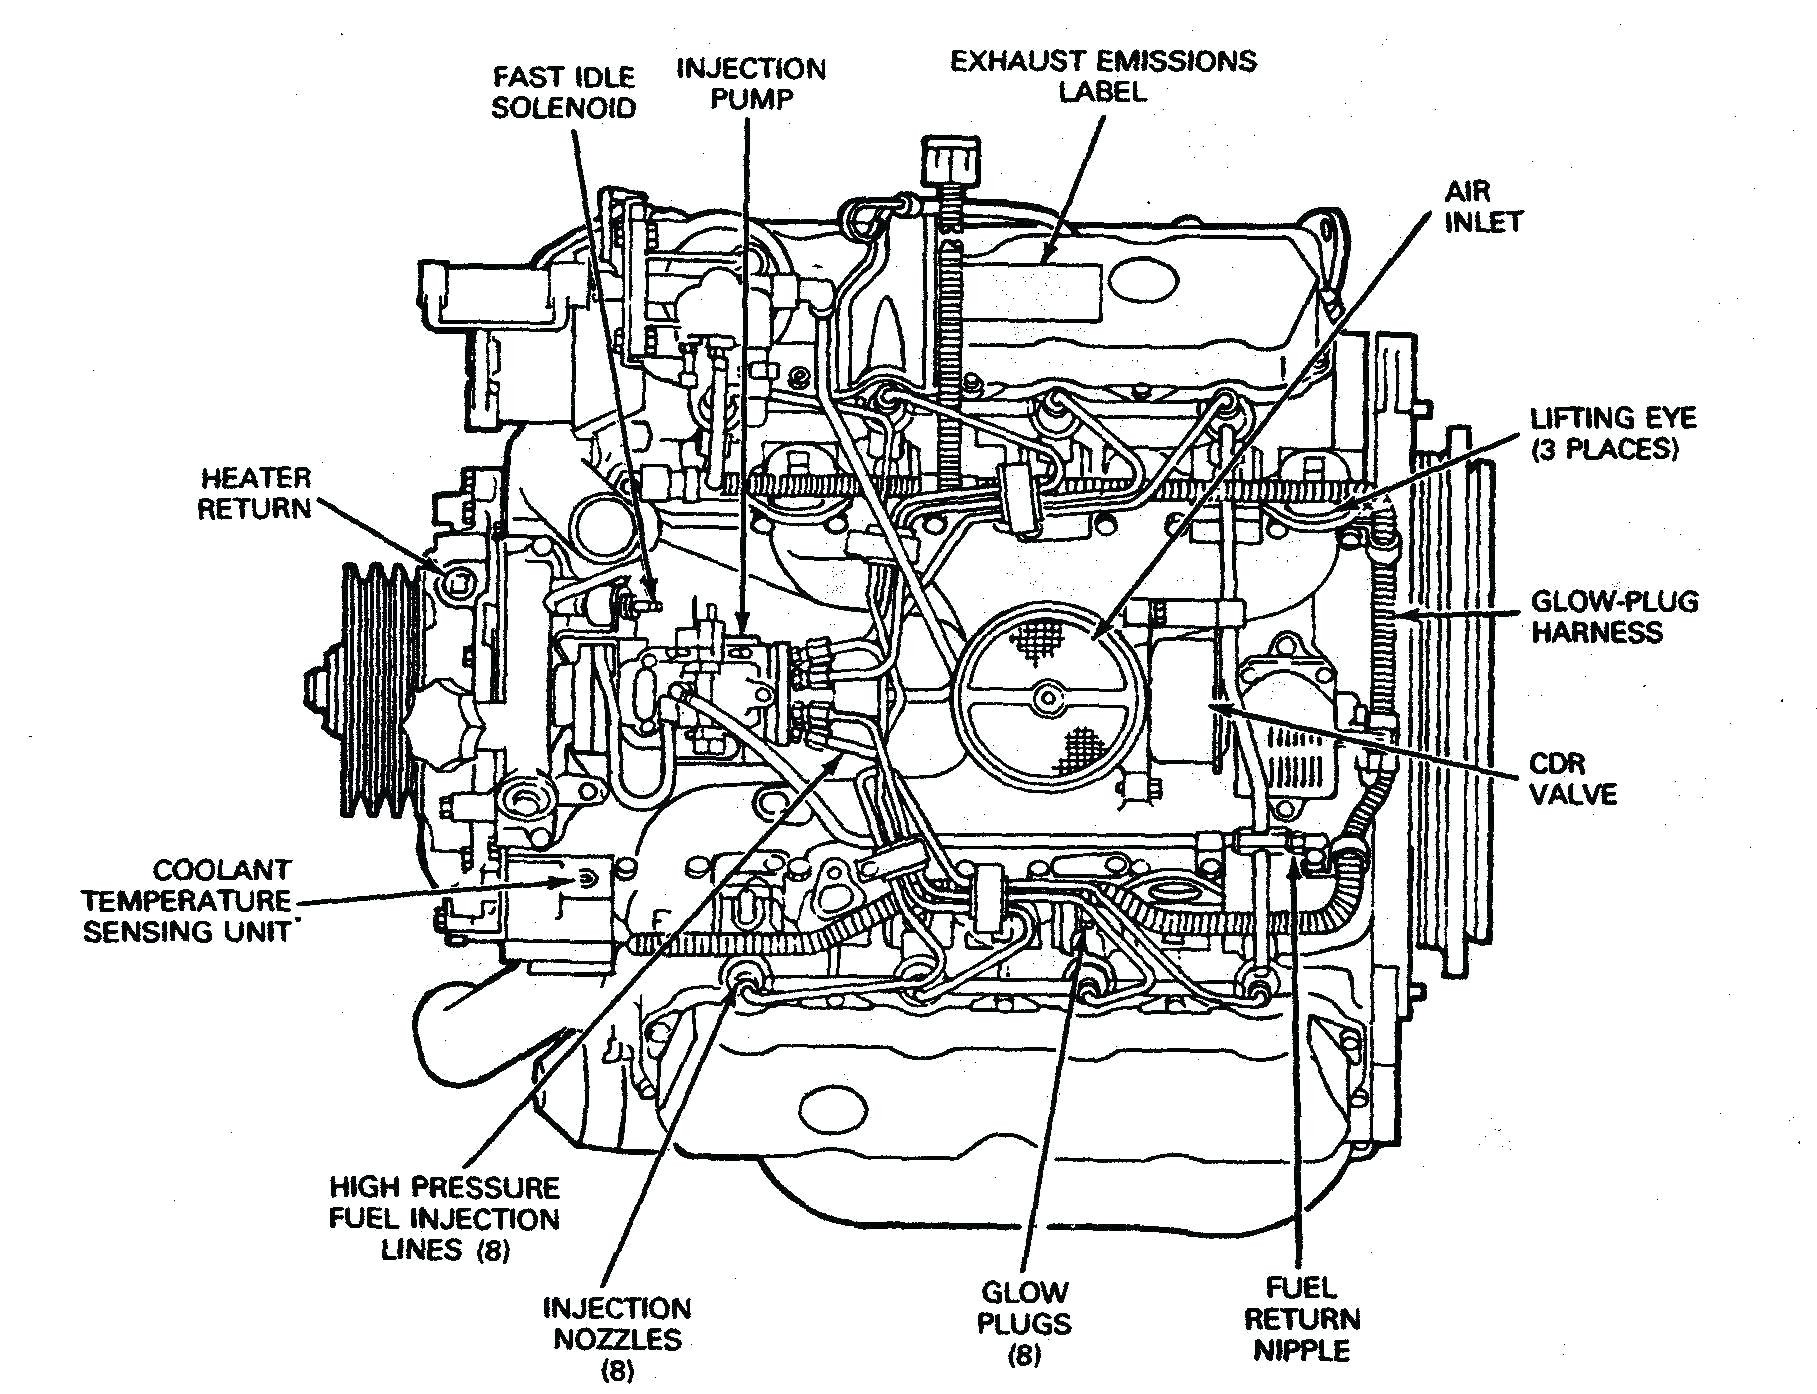 Jeep Engine Parts Diagram Kawasaki Diagrams Fh680v Wiring Delighted Inspiration Of